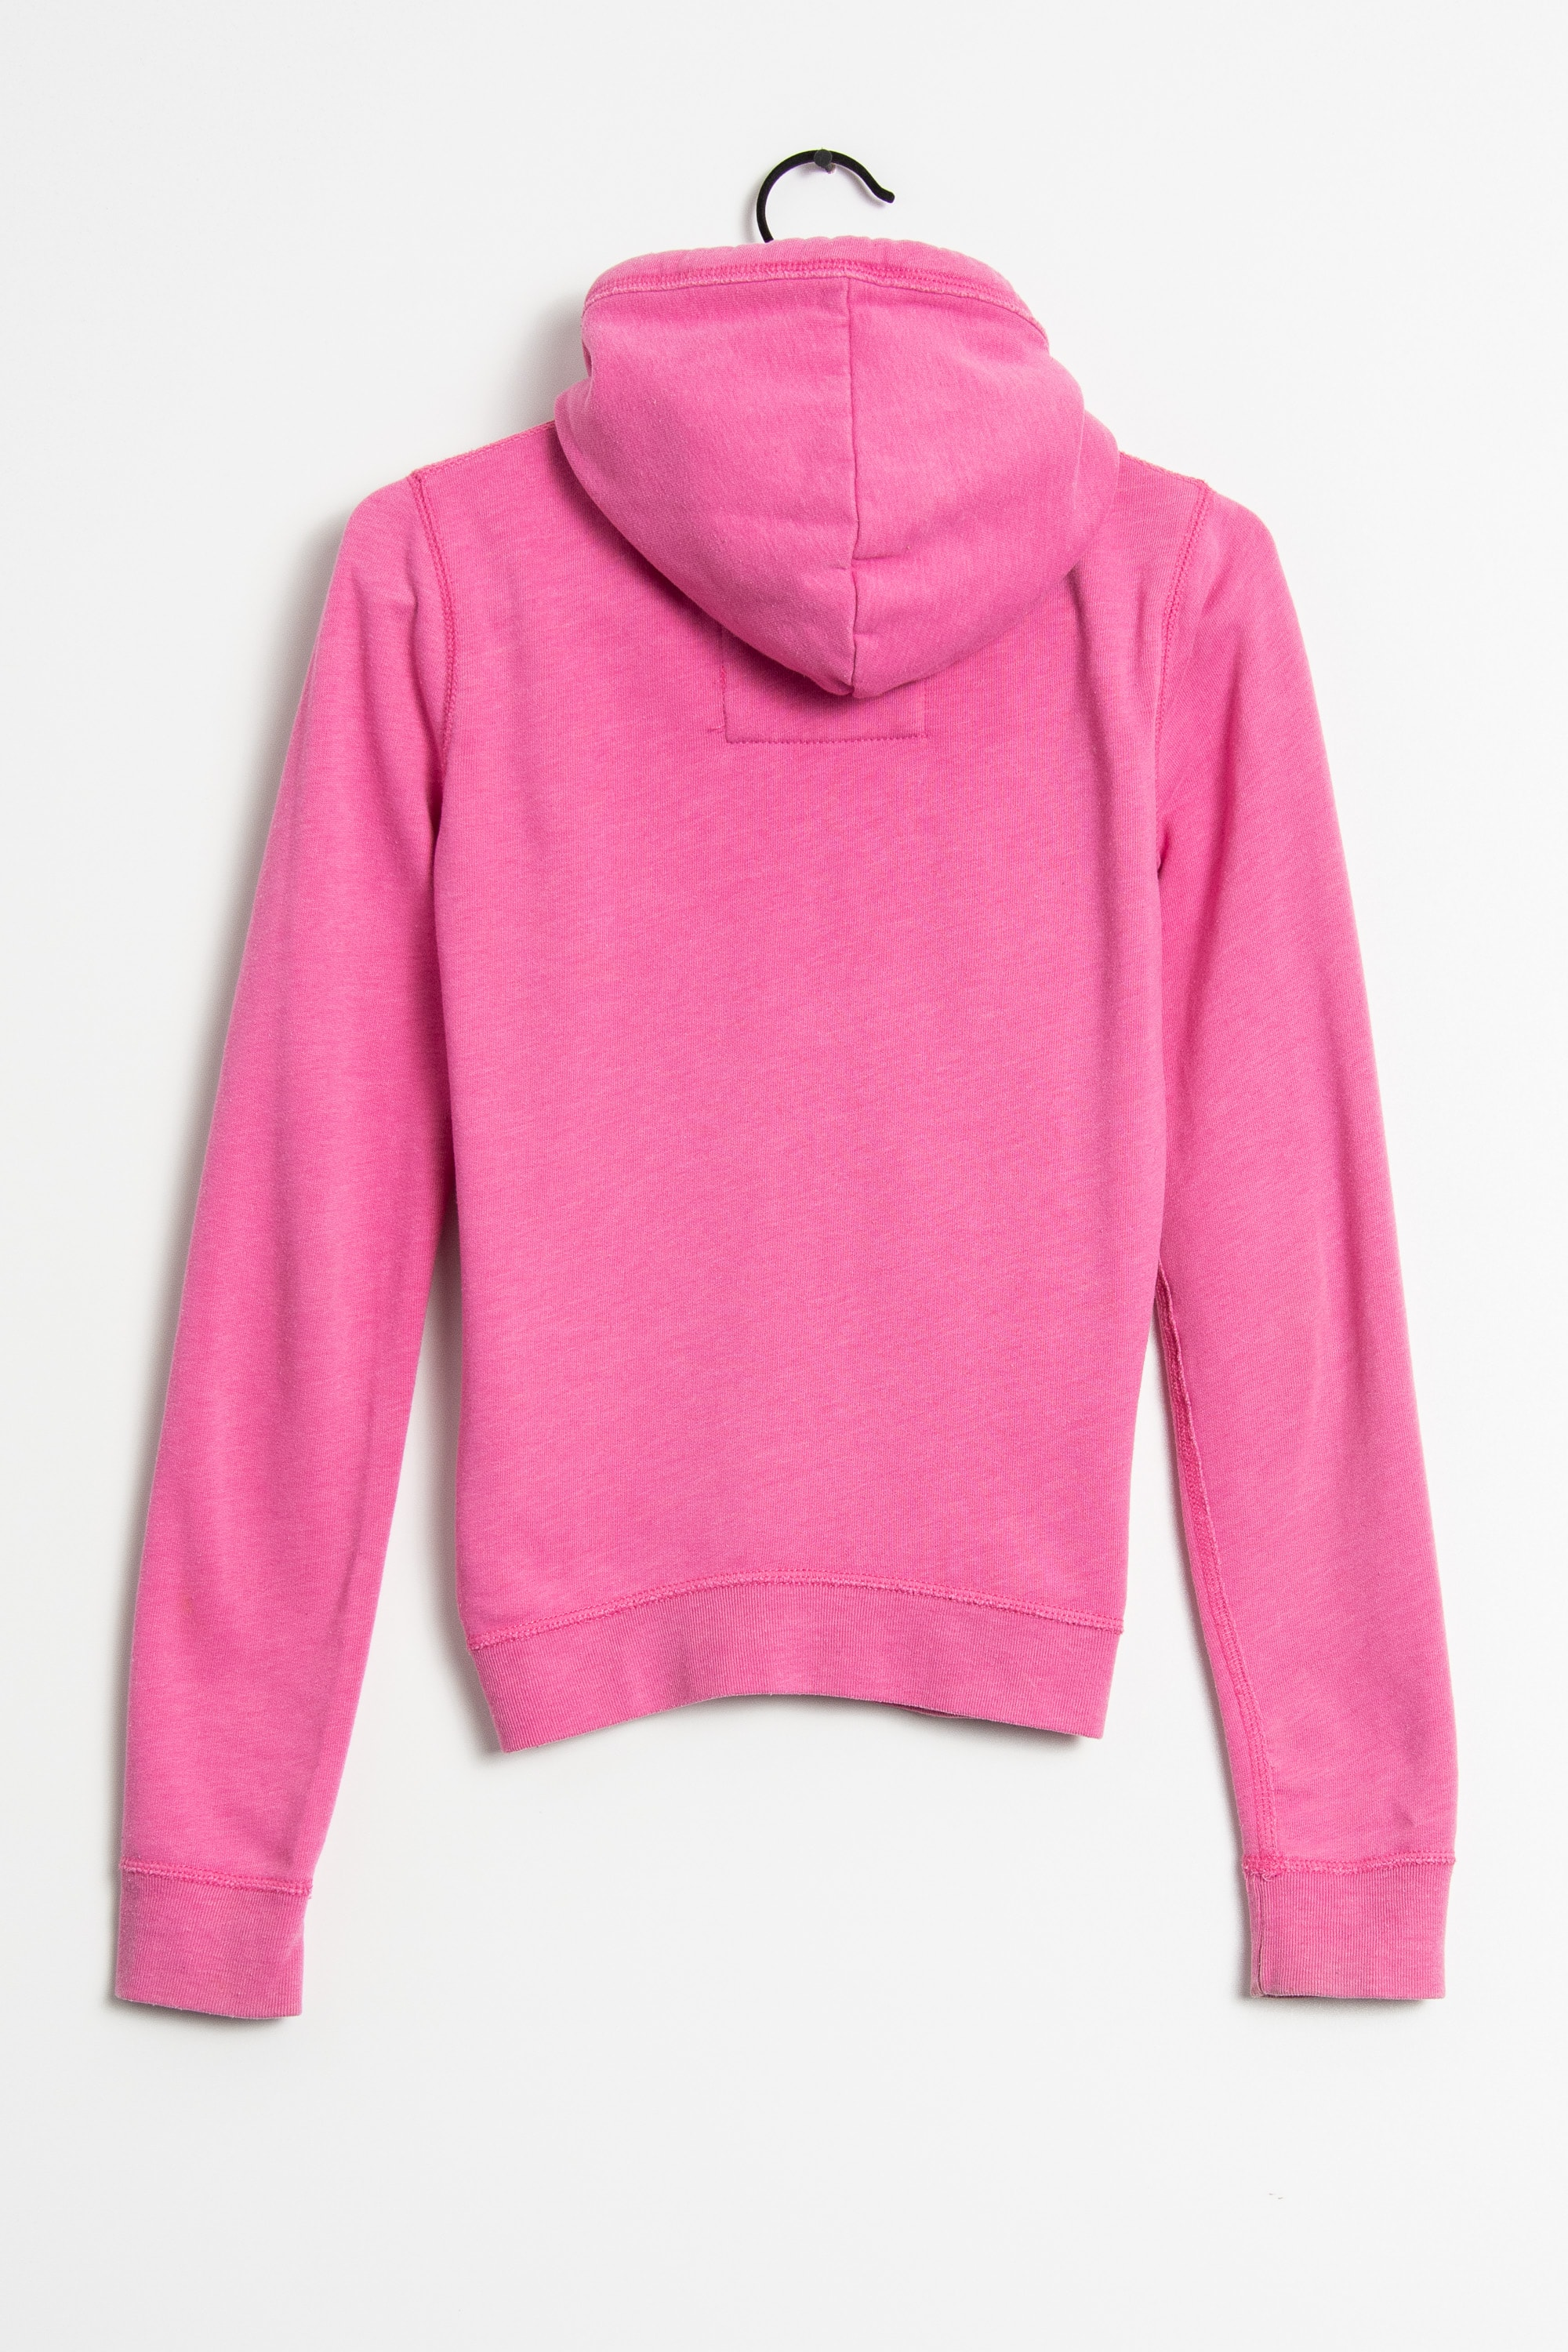 Hollister Co. Sweat / Fleece Pink Gr.XS